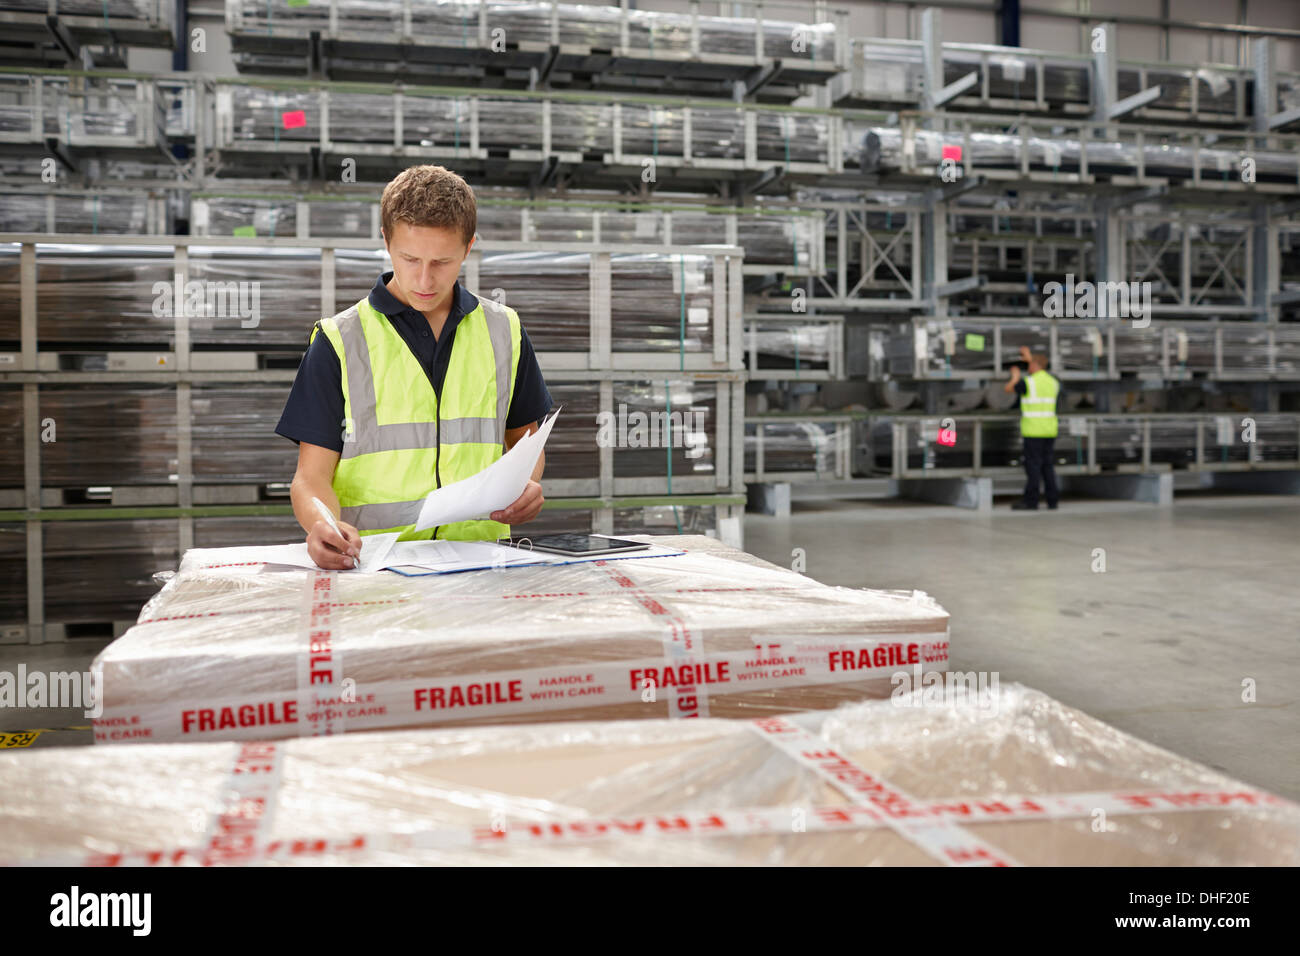 Warehouse worker checking order in engineering warehouse Photo Stock